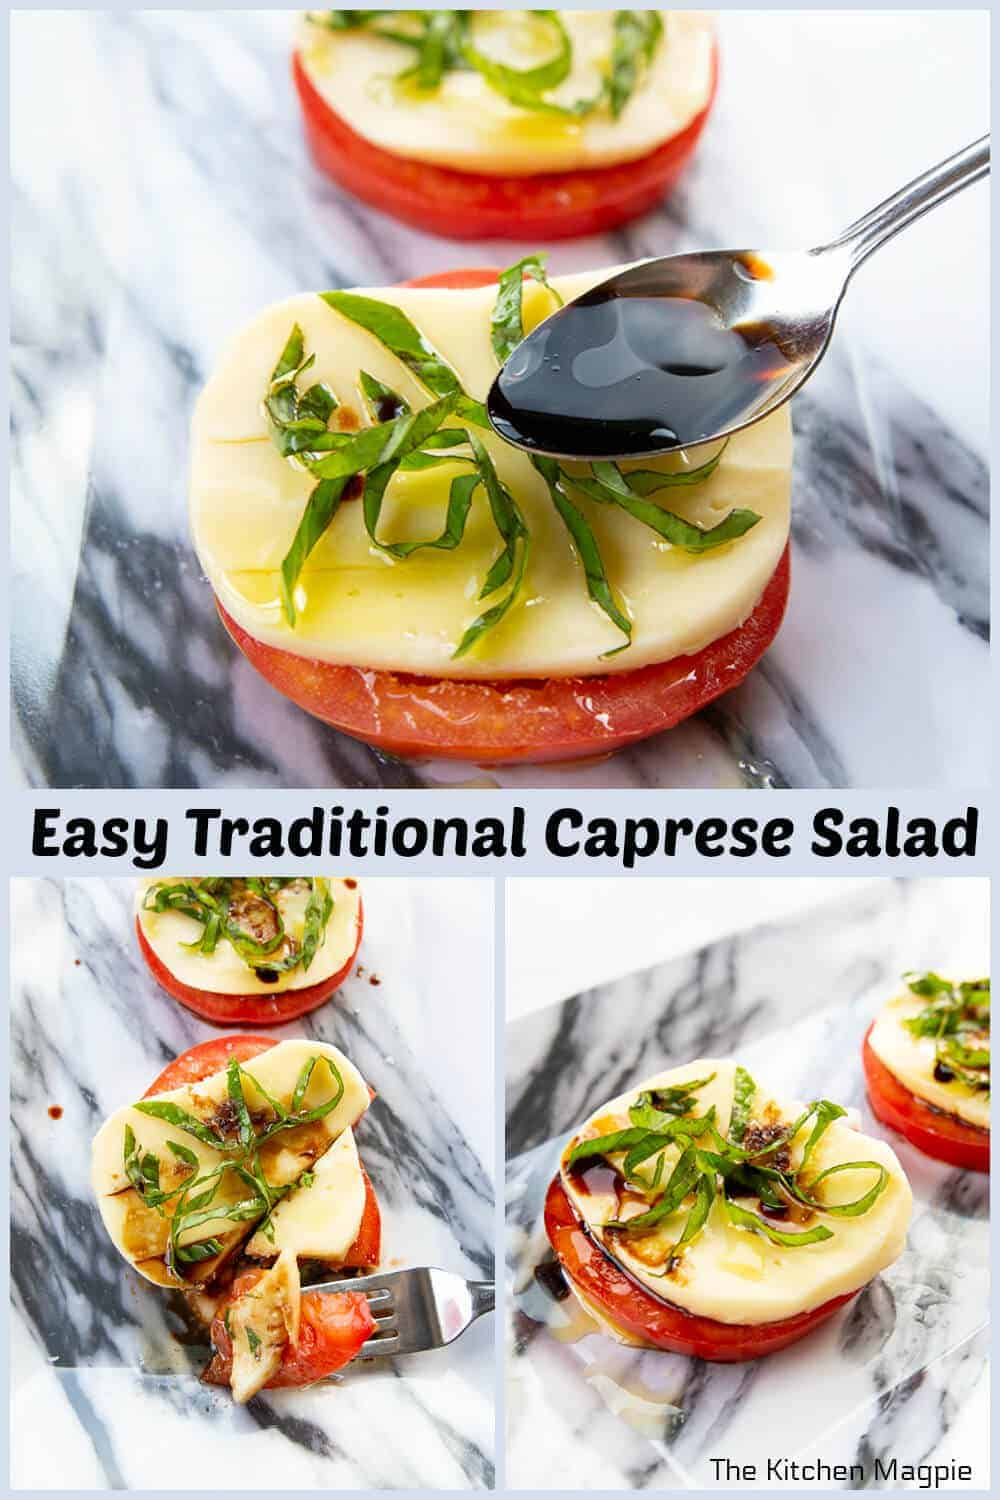 Traditional Caprese Salad is usually not a chopped up salad but rather tomato slices and slices of fresh mozzarella that are topped with olive oil and fresh basil. I also add balsamic vinegar for a kick!